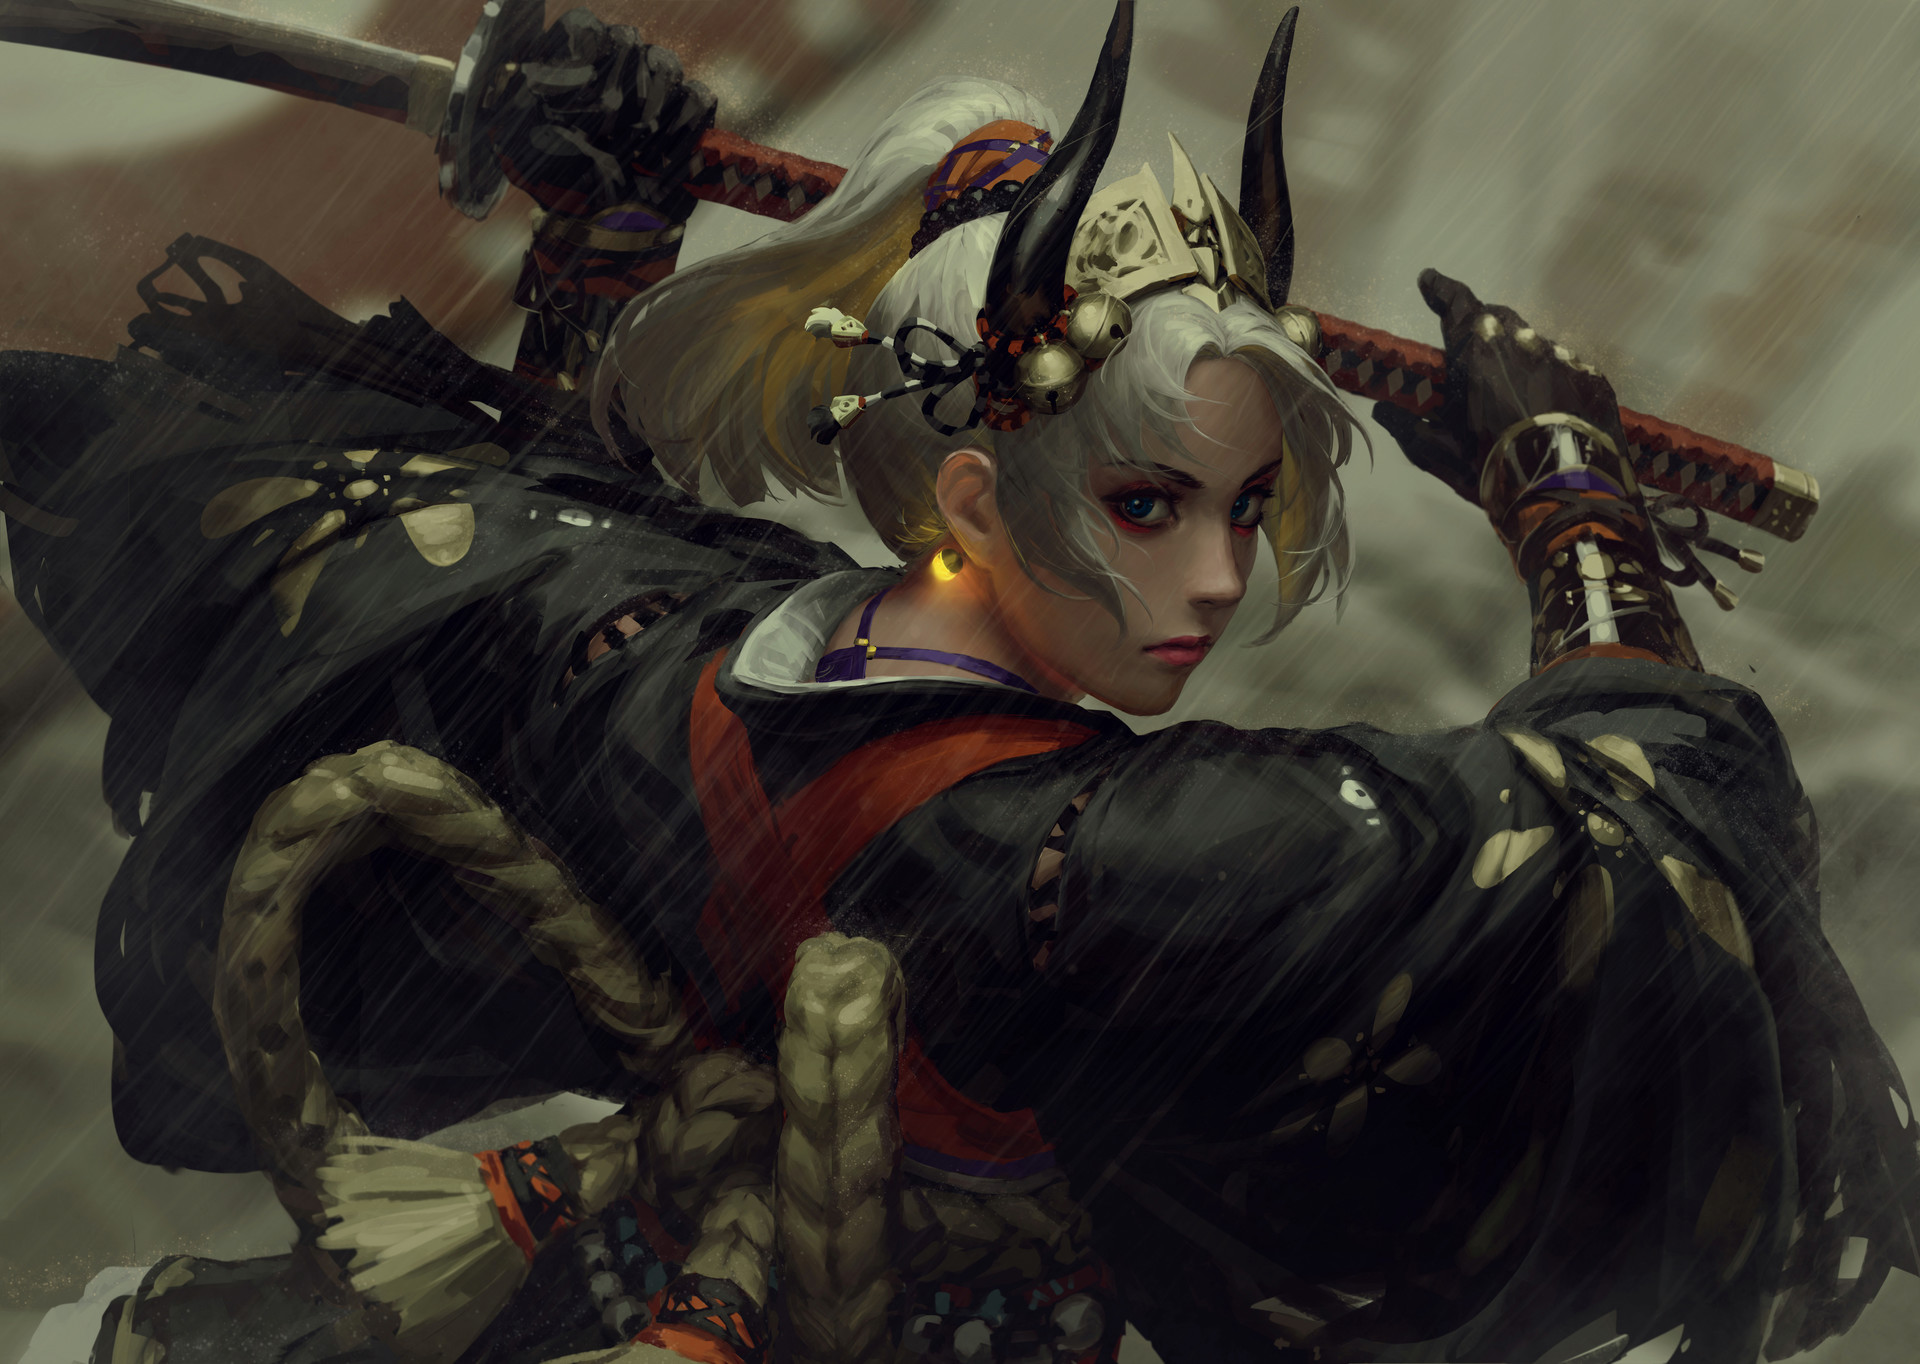 The Glorious Fantasy Illustrations of Guweiz